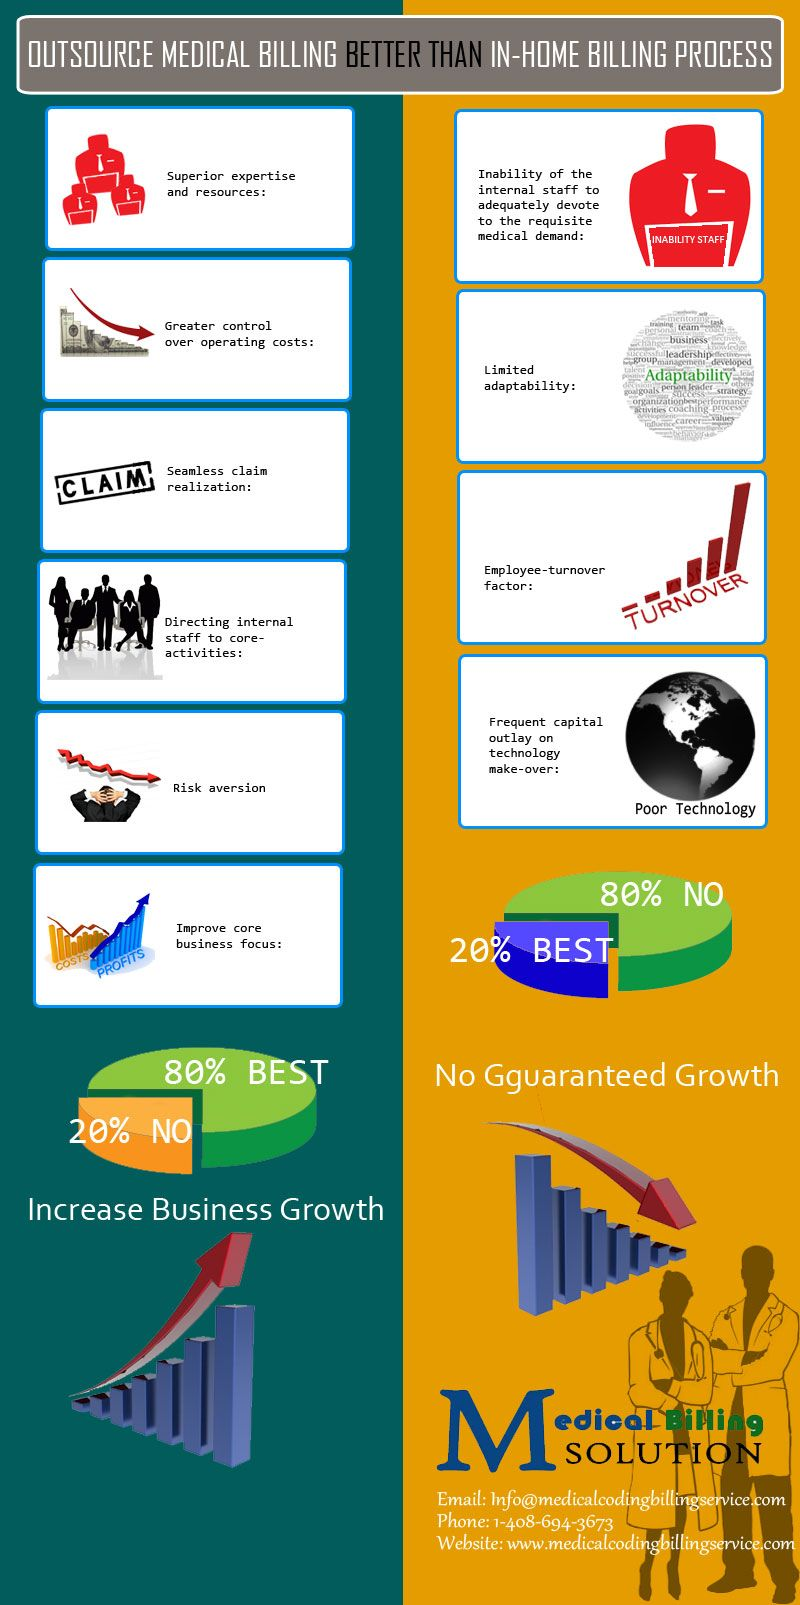 Excellent Knowledge And Resources Outsourced Medical Billing Solutions Include A Tag Of Outstanding Knowledge Medical Billing Healthcare Infographics Medical